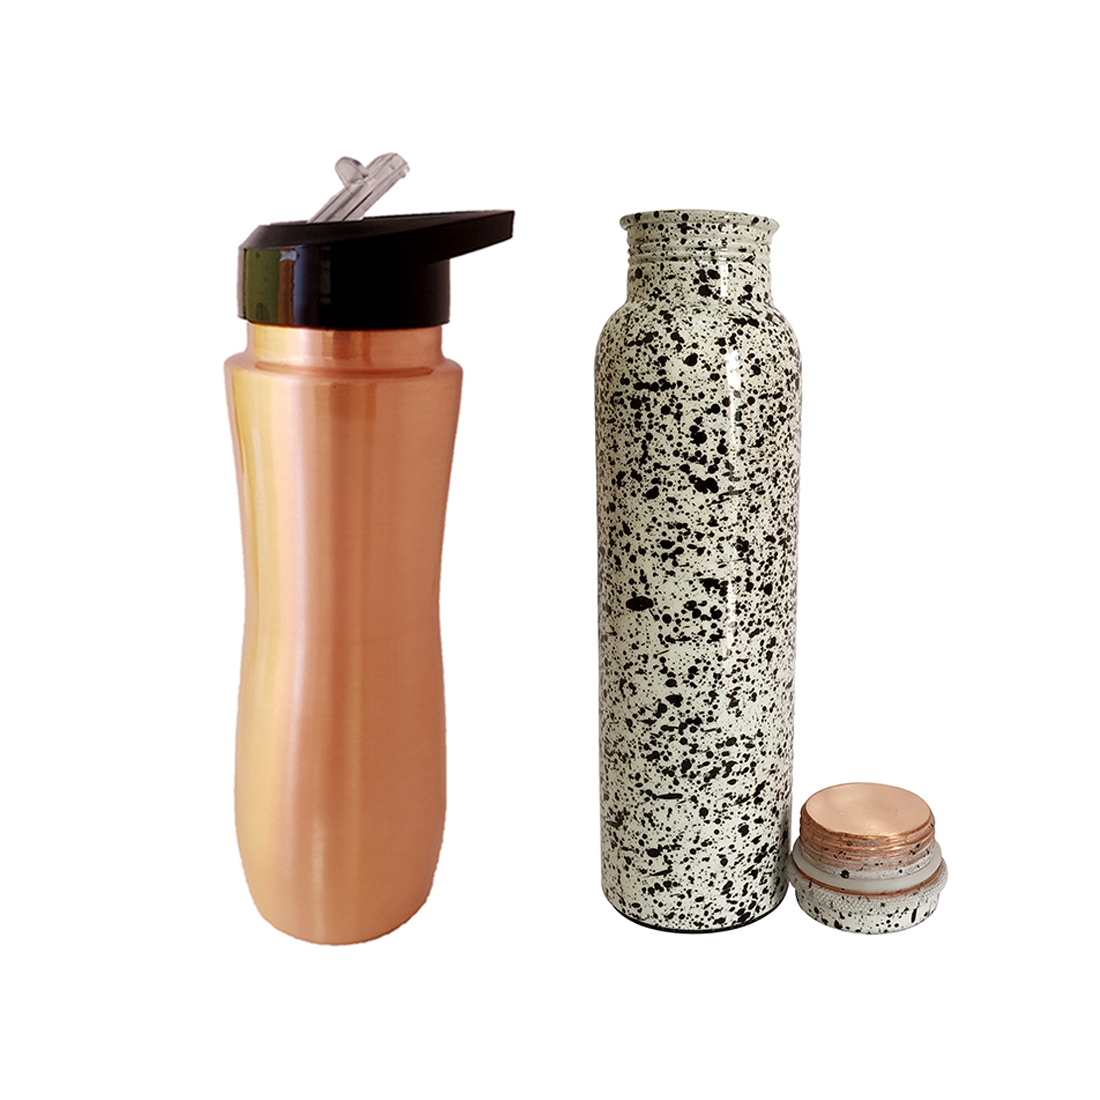 1 Sipper 750Ml and 1 Copper Bottle 750Ml - sports sipper 750ML Doted Printed Copper Bottle 750ml